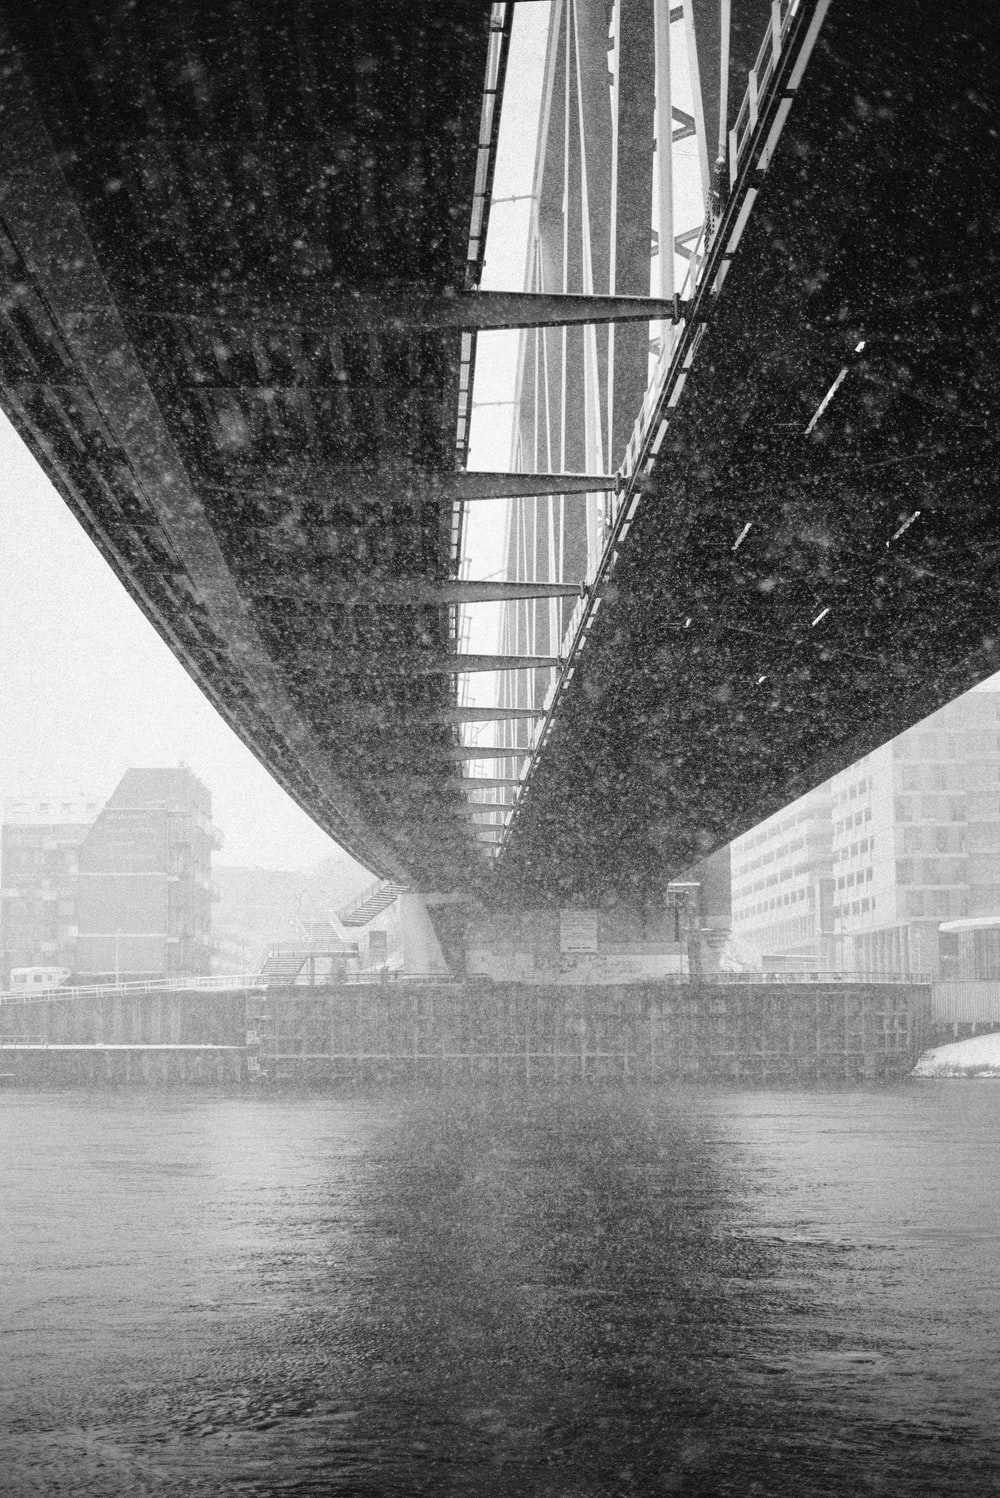 grayscale architectural photography of metal bridge underneath